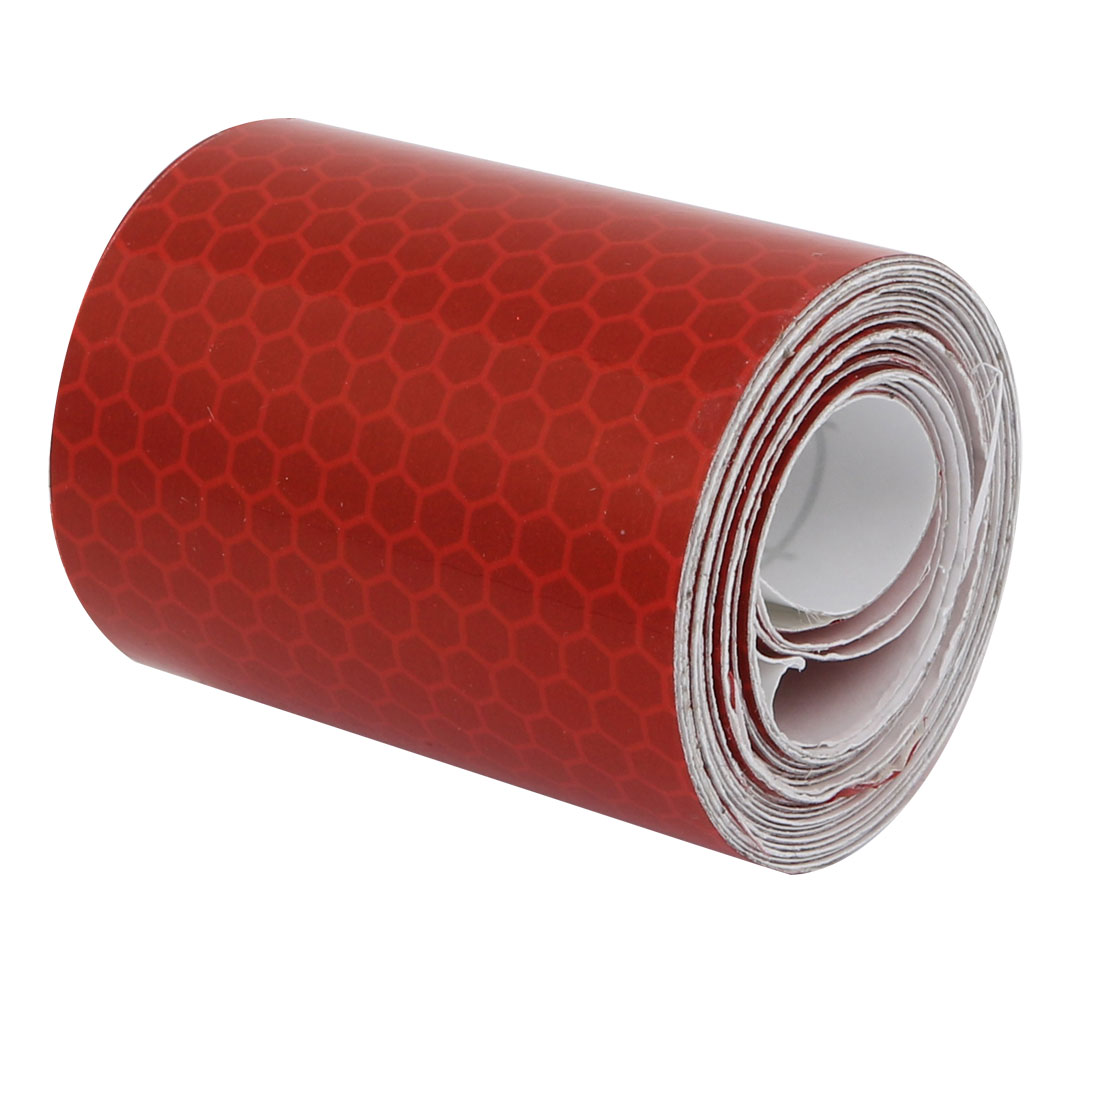 5cm Wide 2M Long Honeycomb Single Sided Adhesive Reflective Warning Tape Red